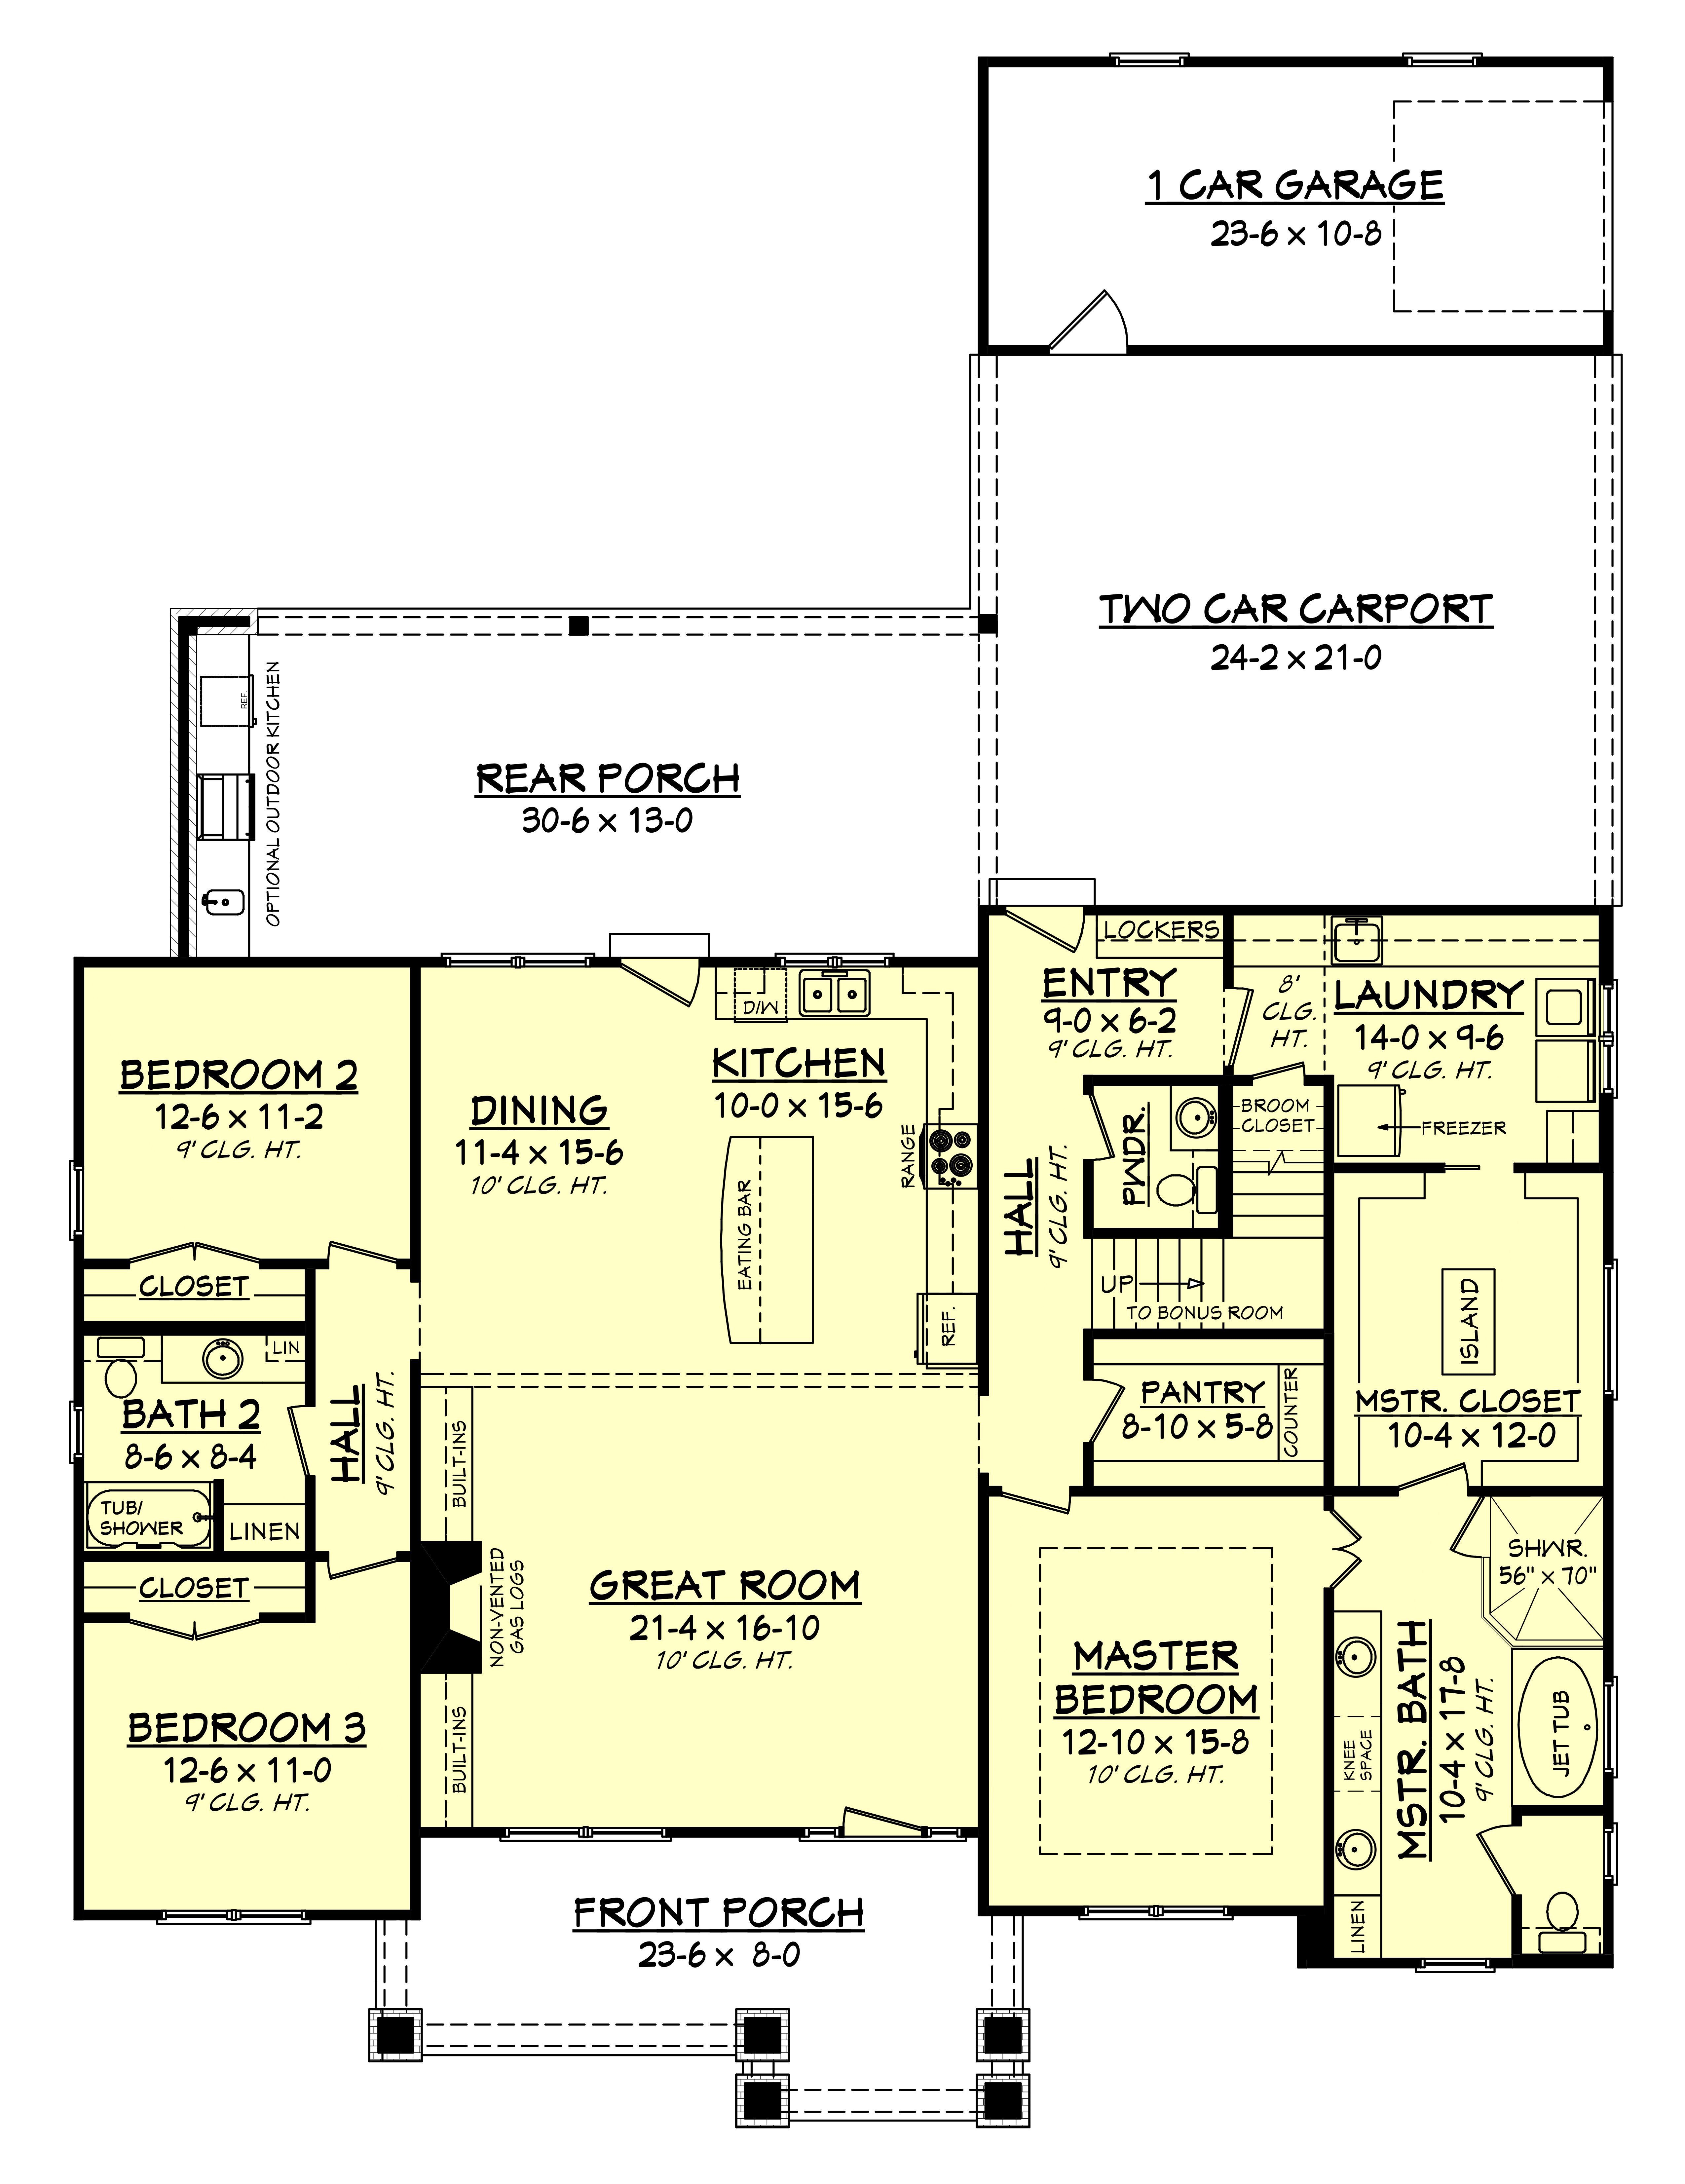 710d2a8a480759adf8af41e8593b72d0 Top Result 52 Best Of Craftsman Style Home Plans Photography 2017 Hdj5